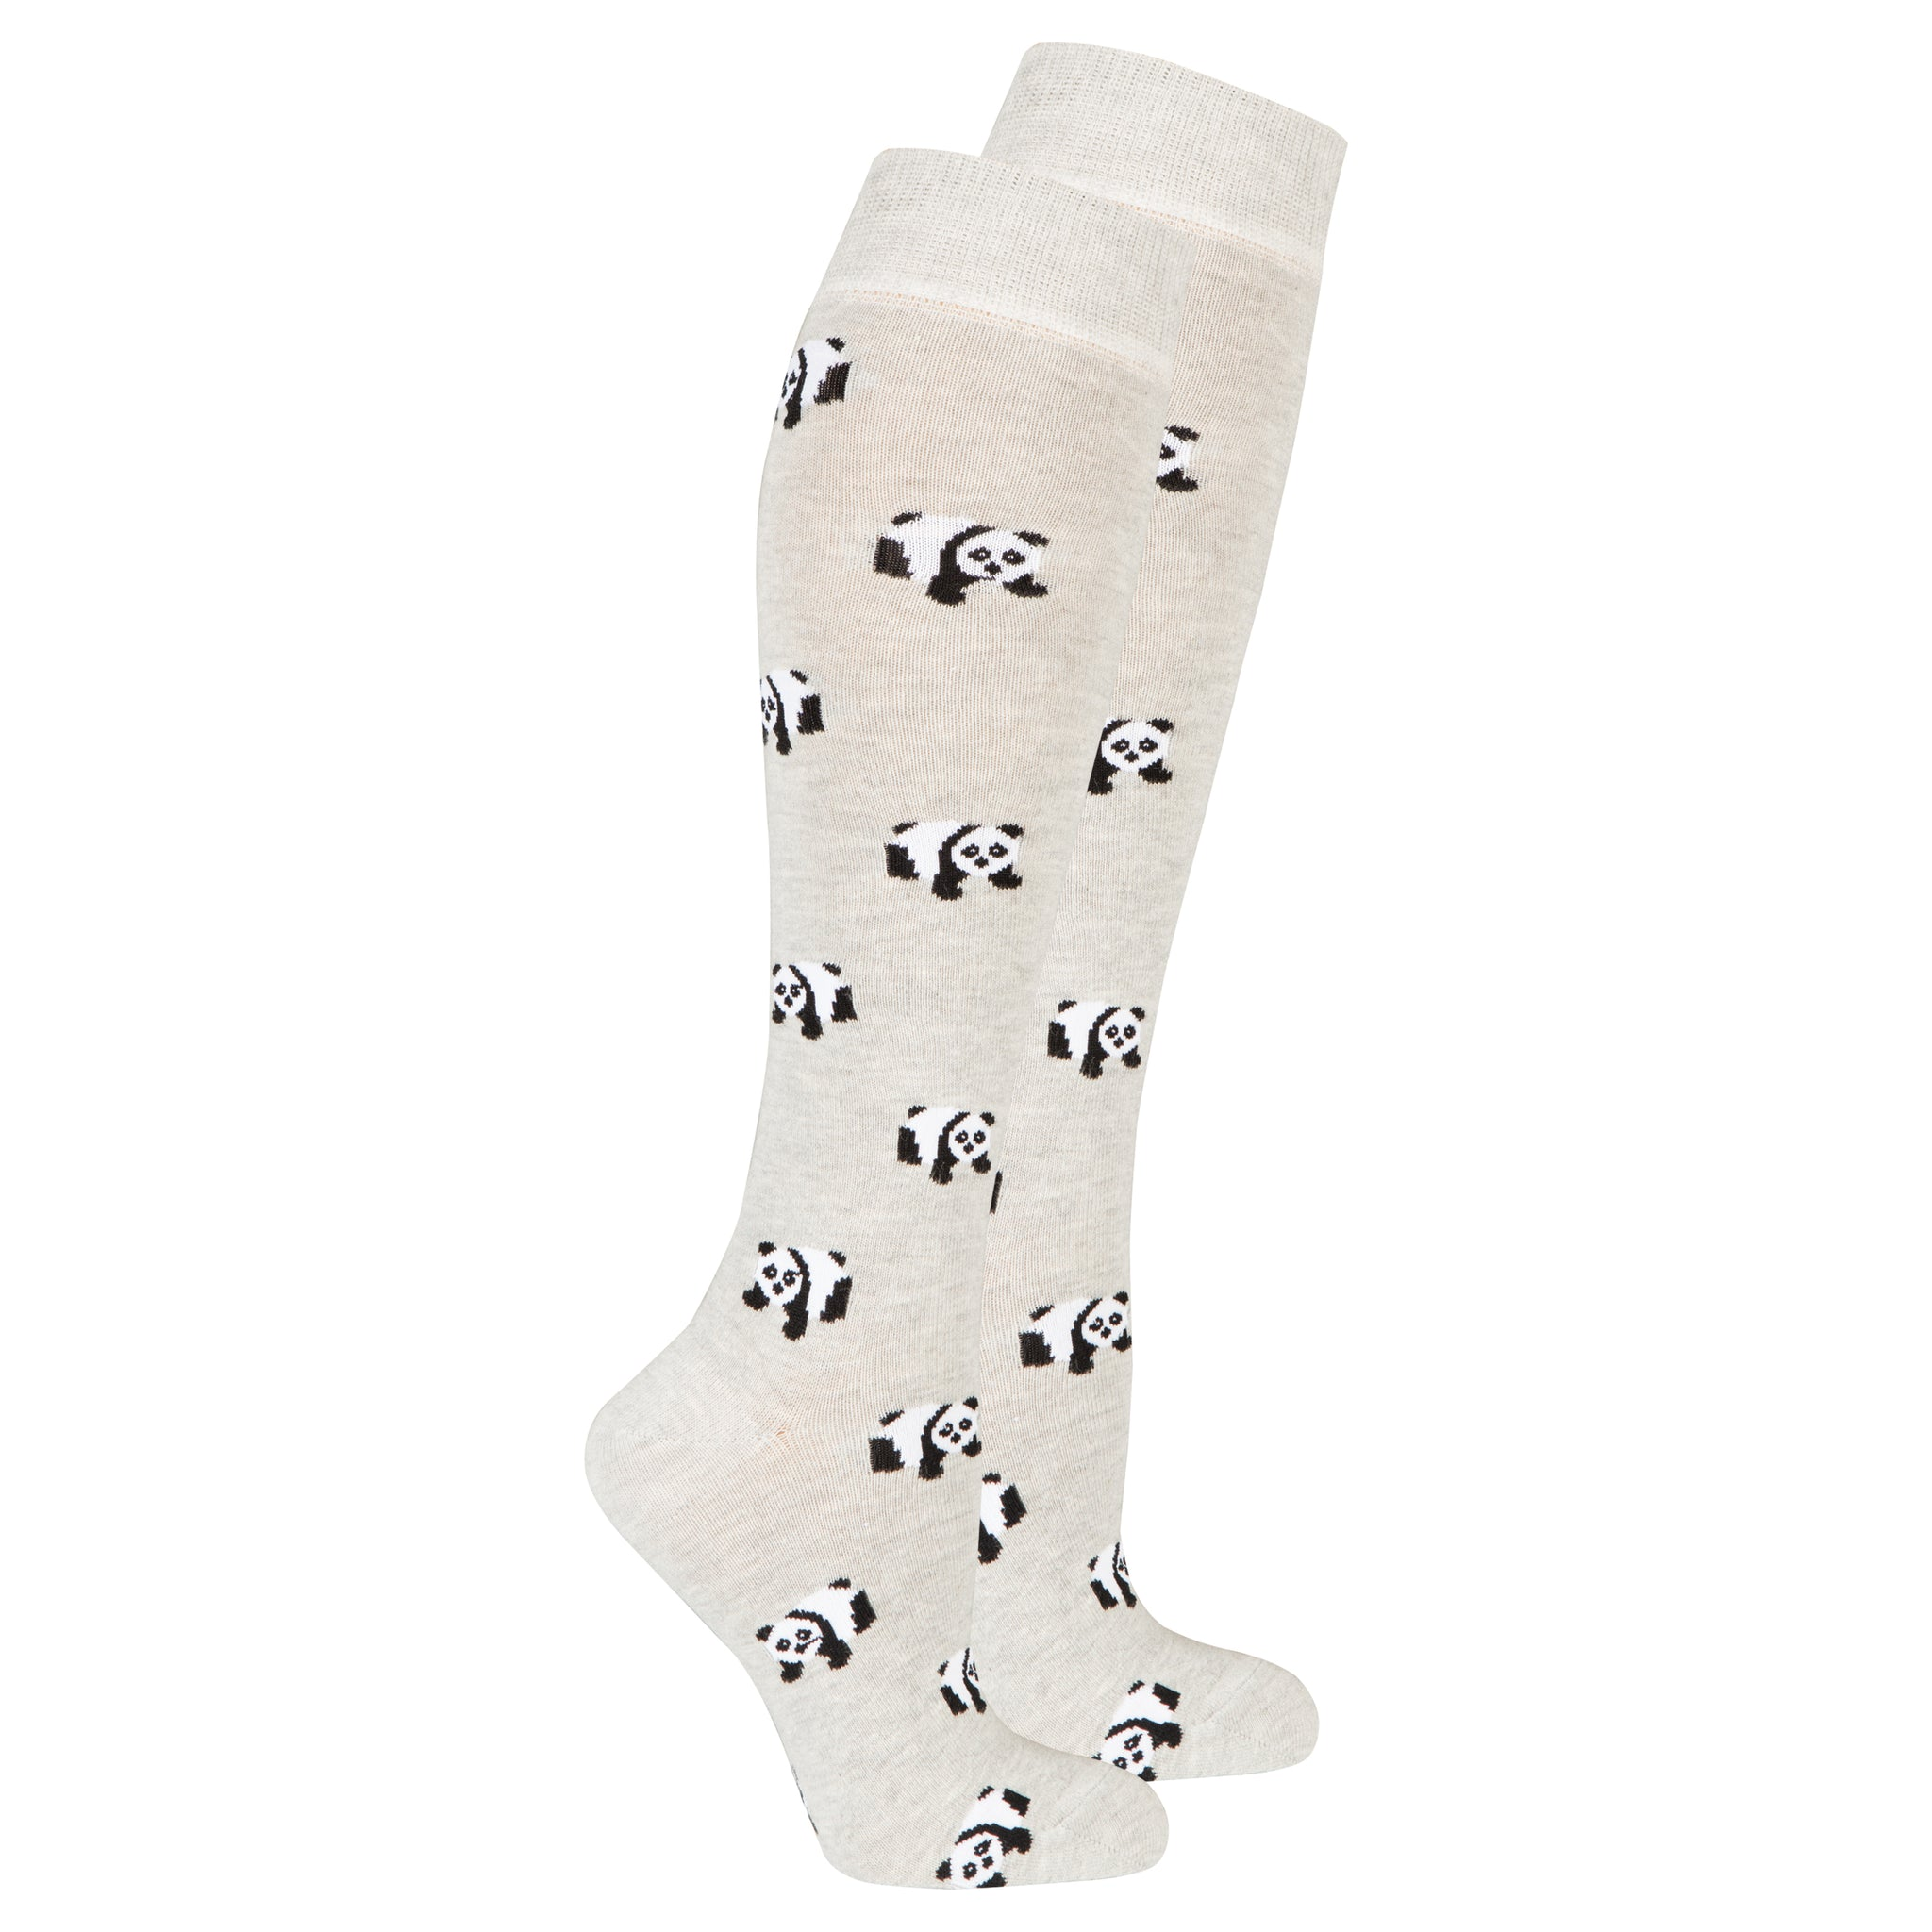 Women's Panda Knee High Socks